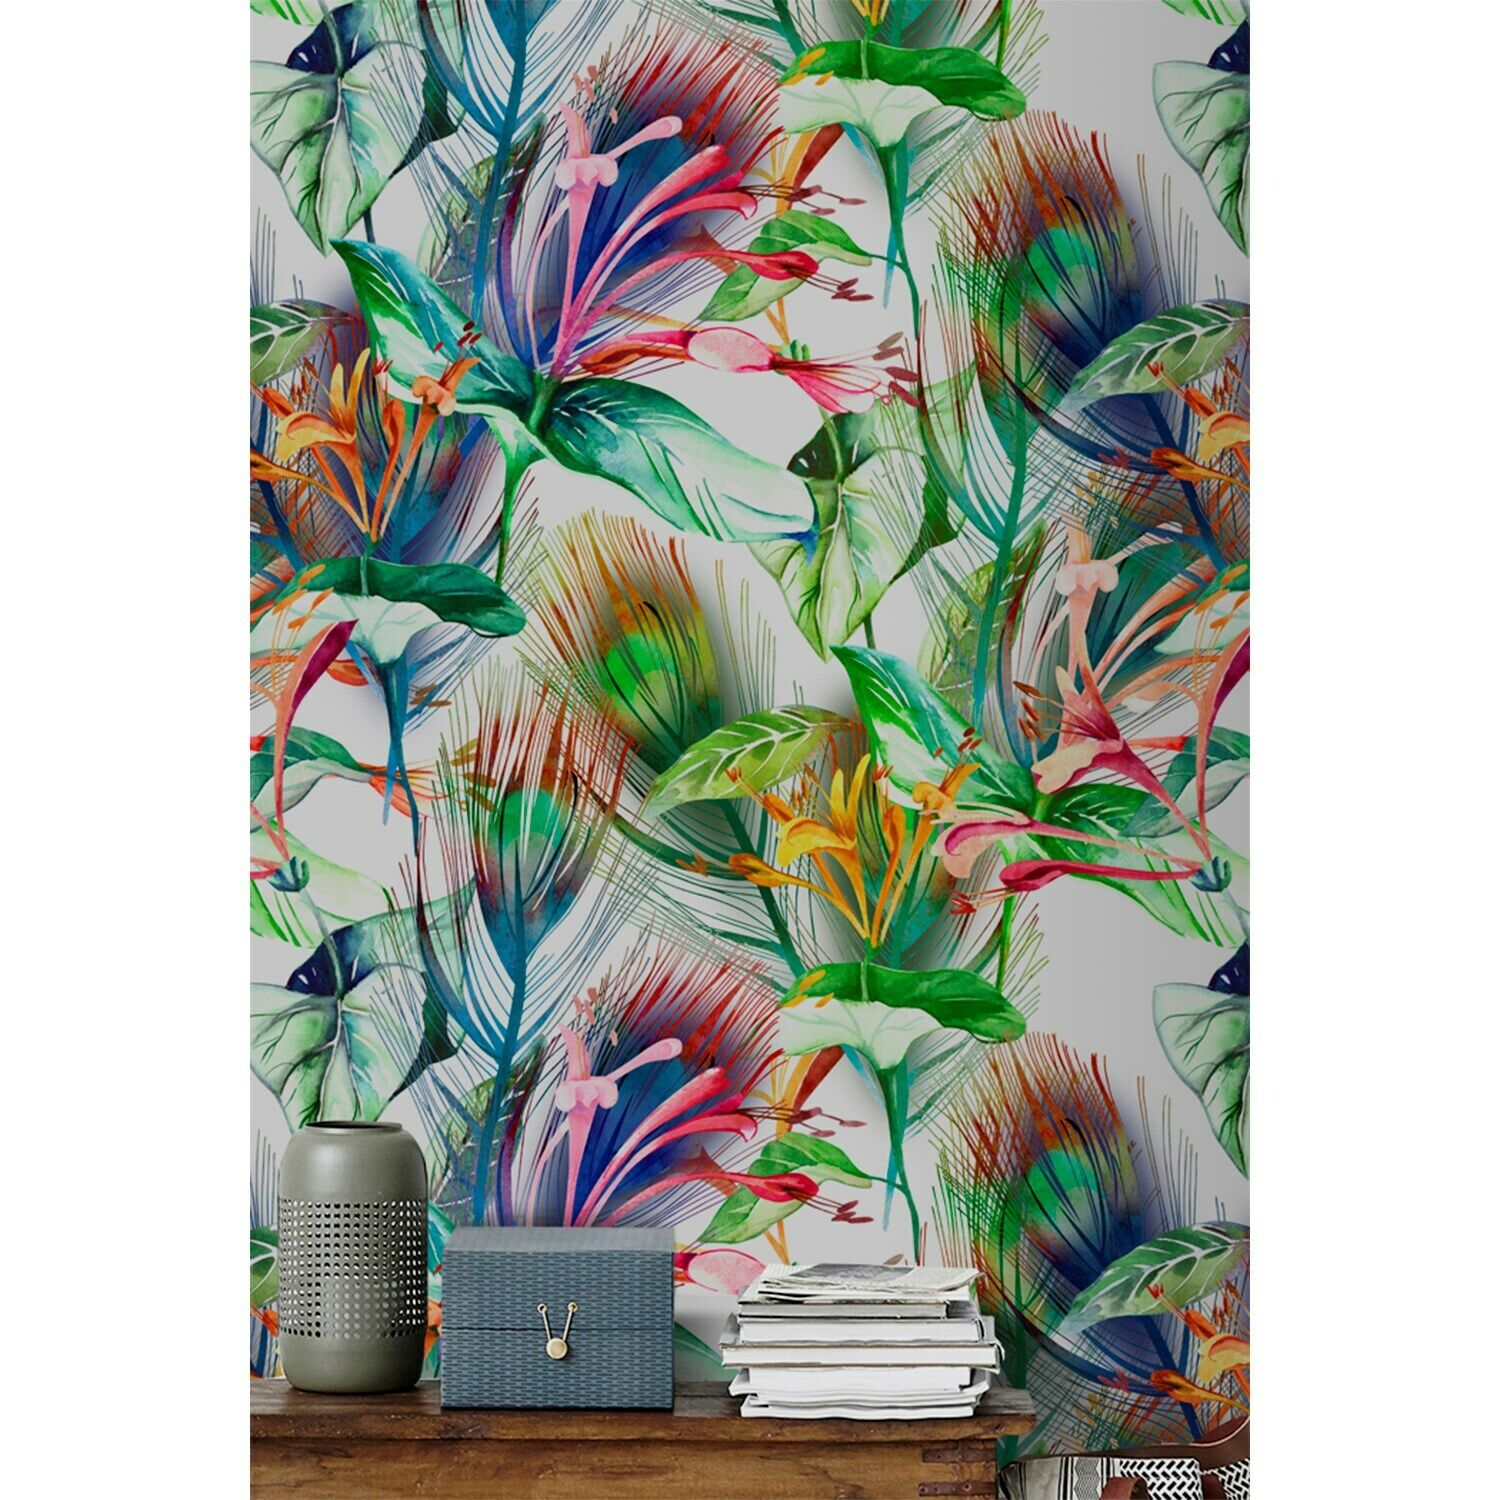 Botanical full of Farbe Farbeful Non-Woven wallpaper Traditional waterFarbe